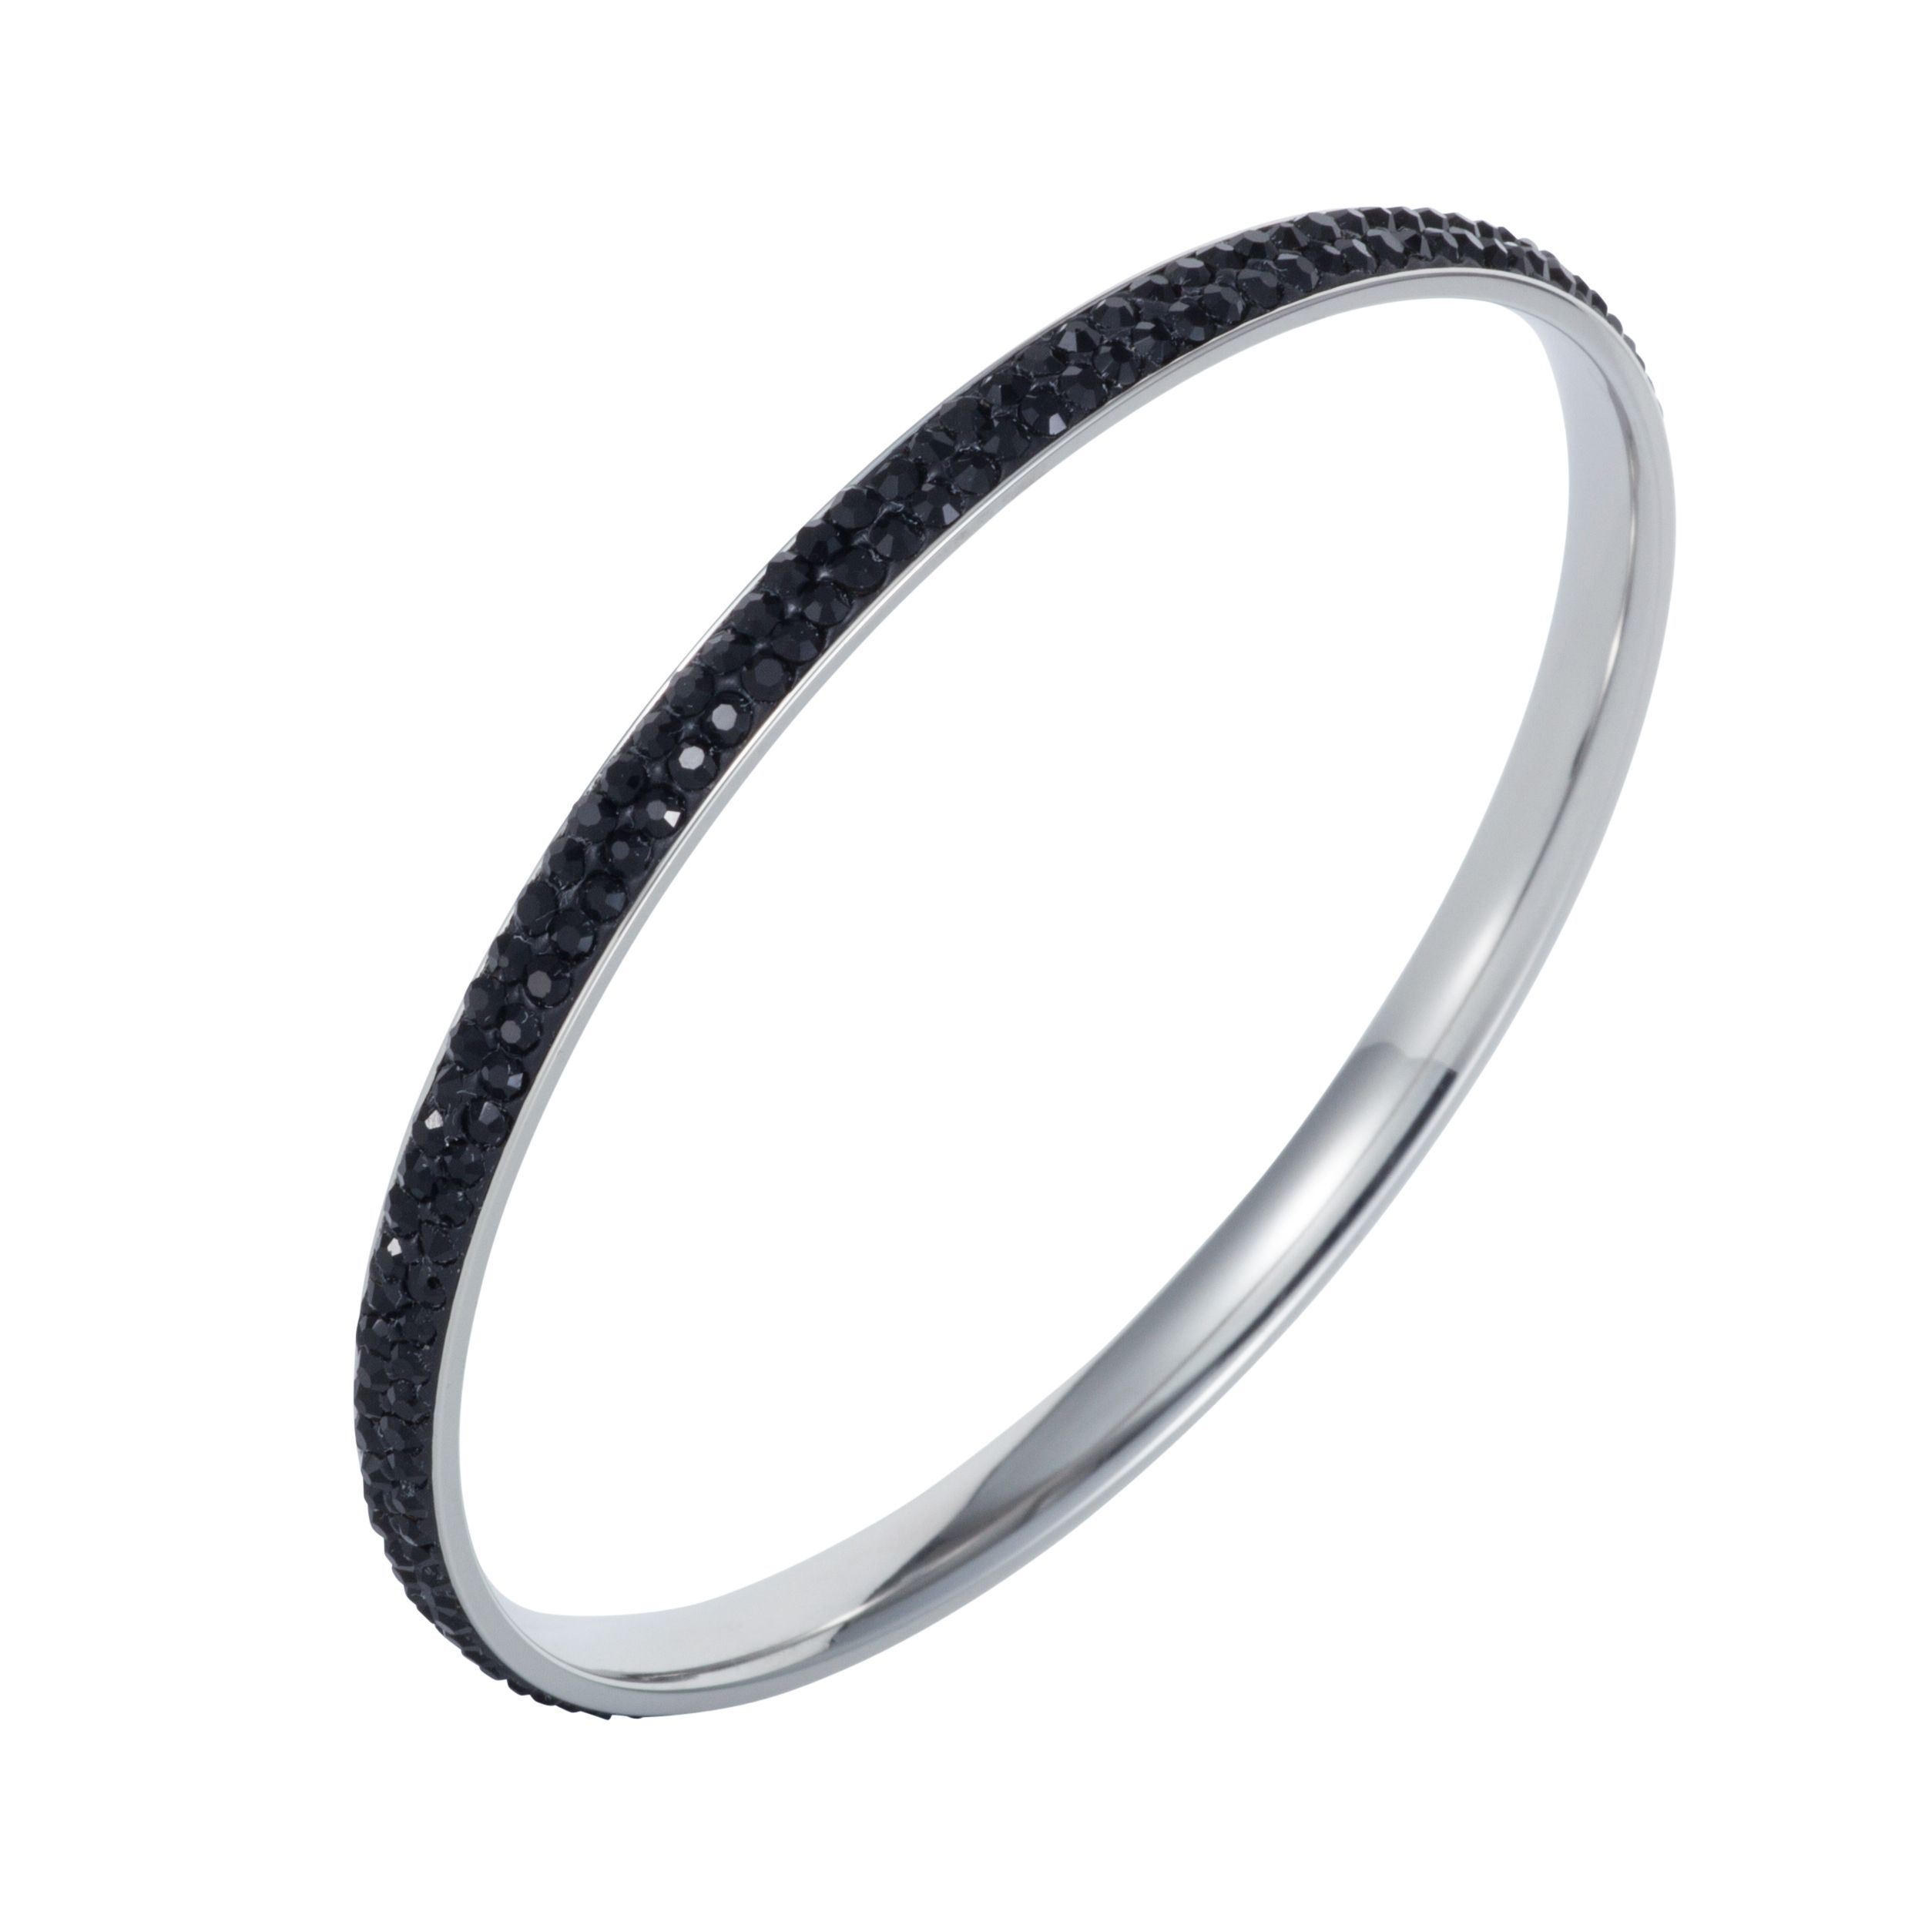 Stainless steel cubic zirconia black bangle